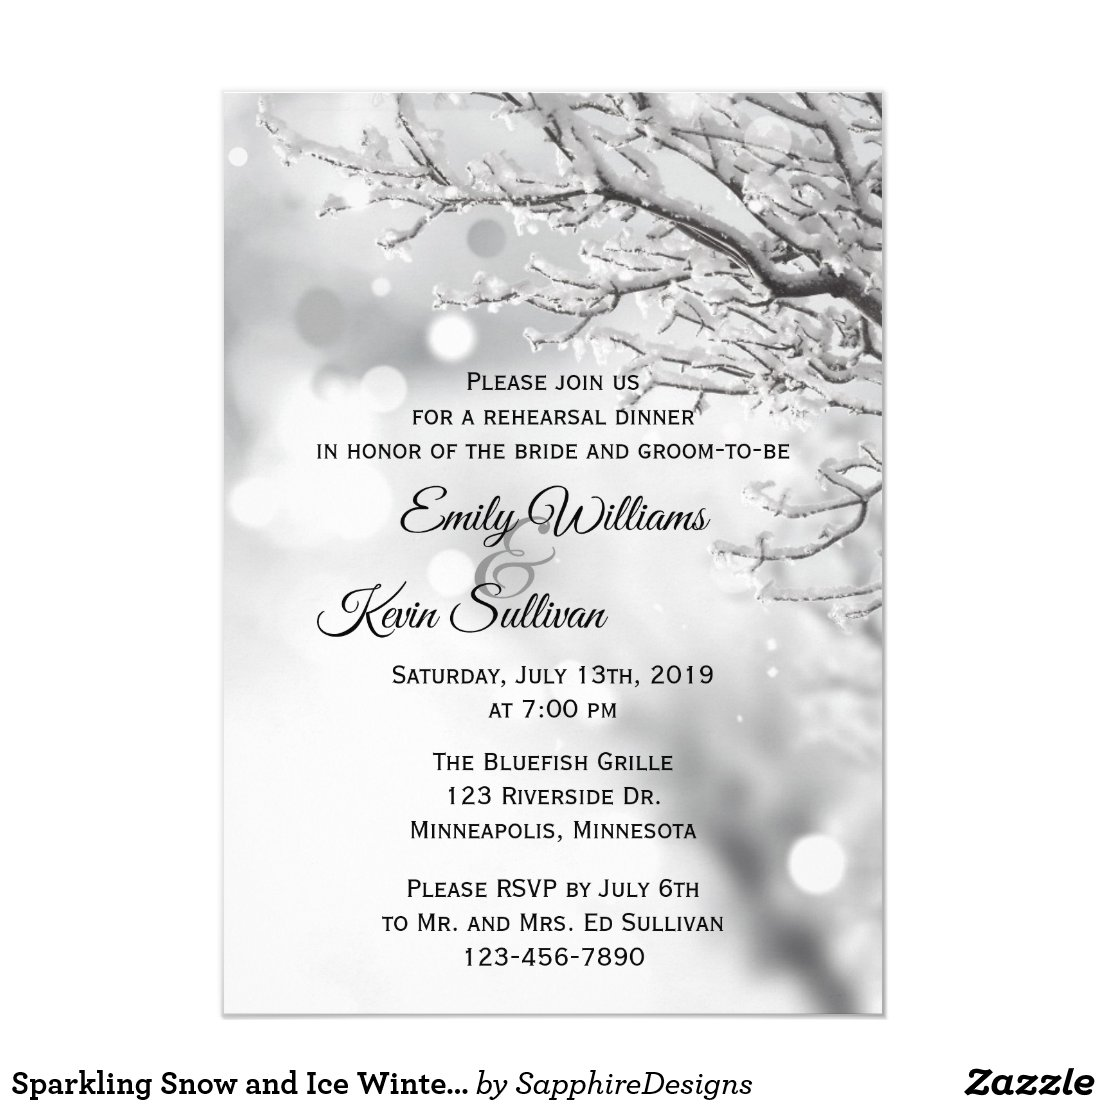 Sparkling Snow and Ice Winter Rehearsal Dinner Invitation